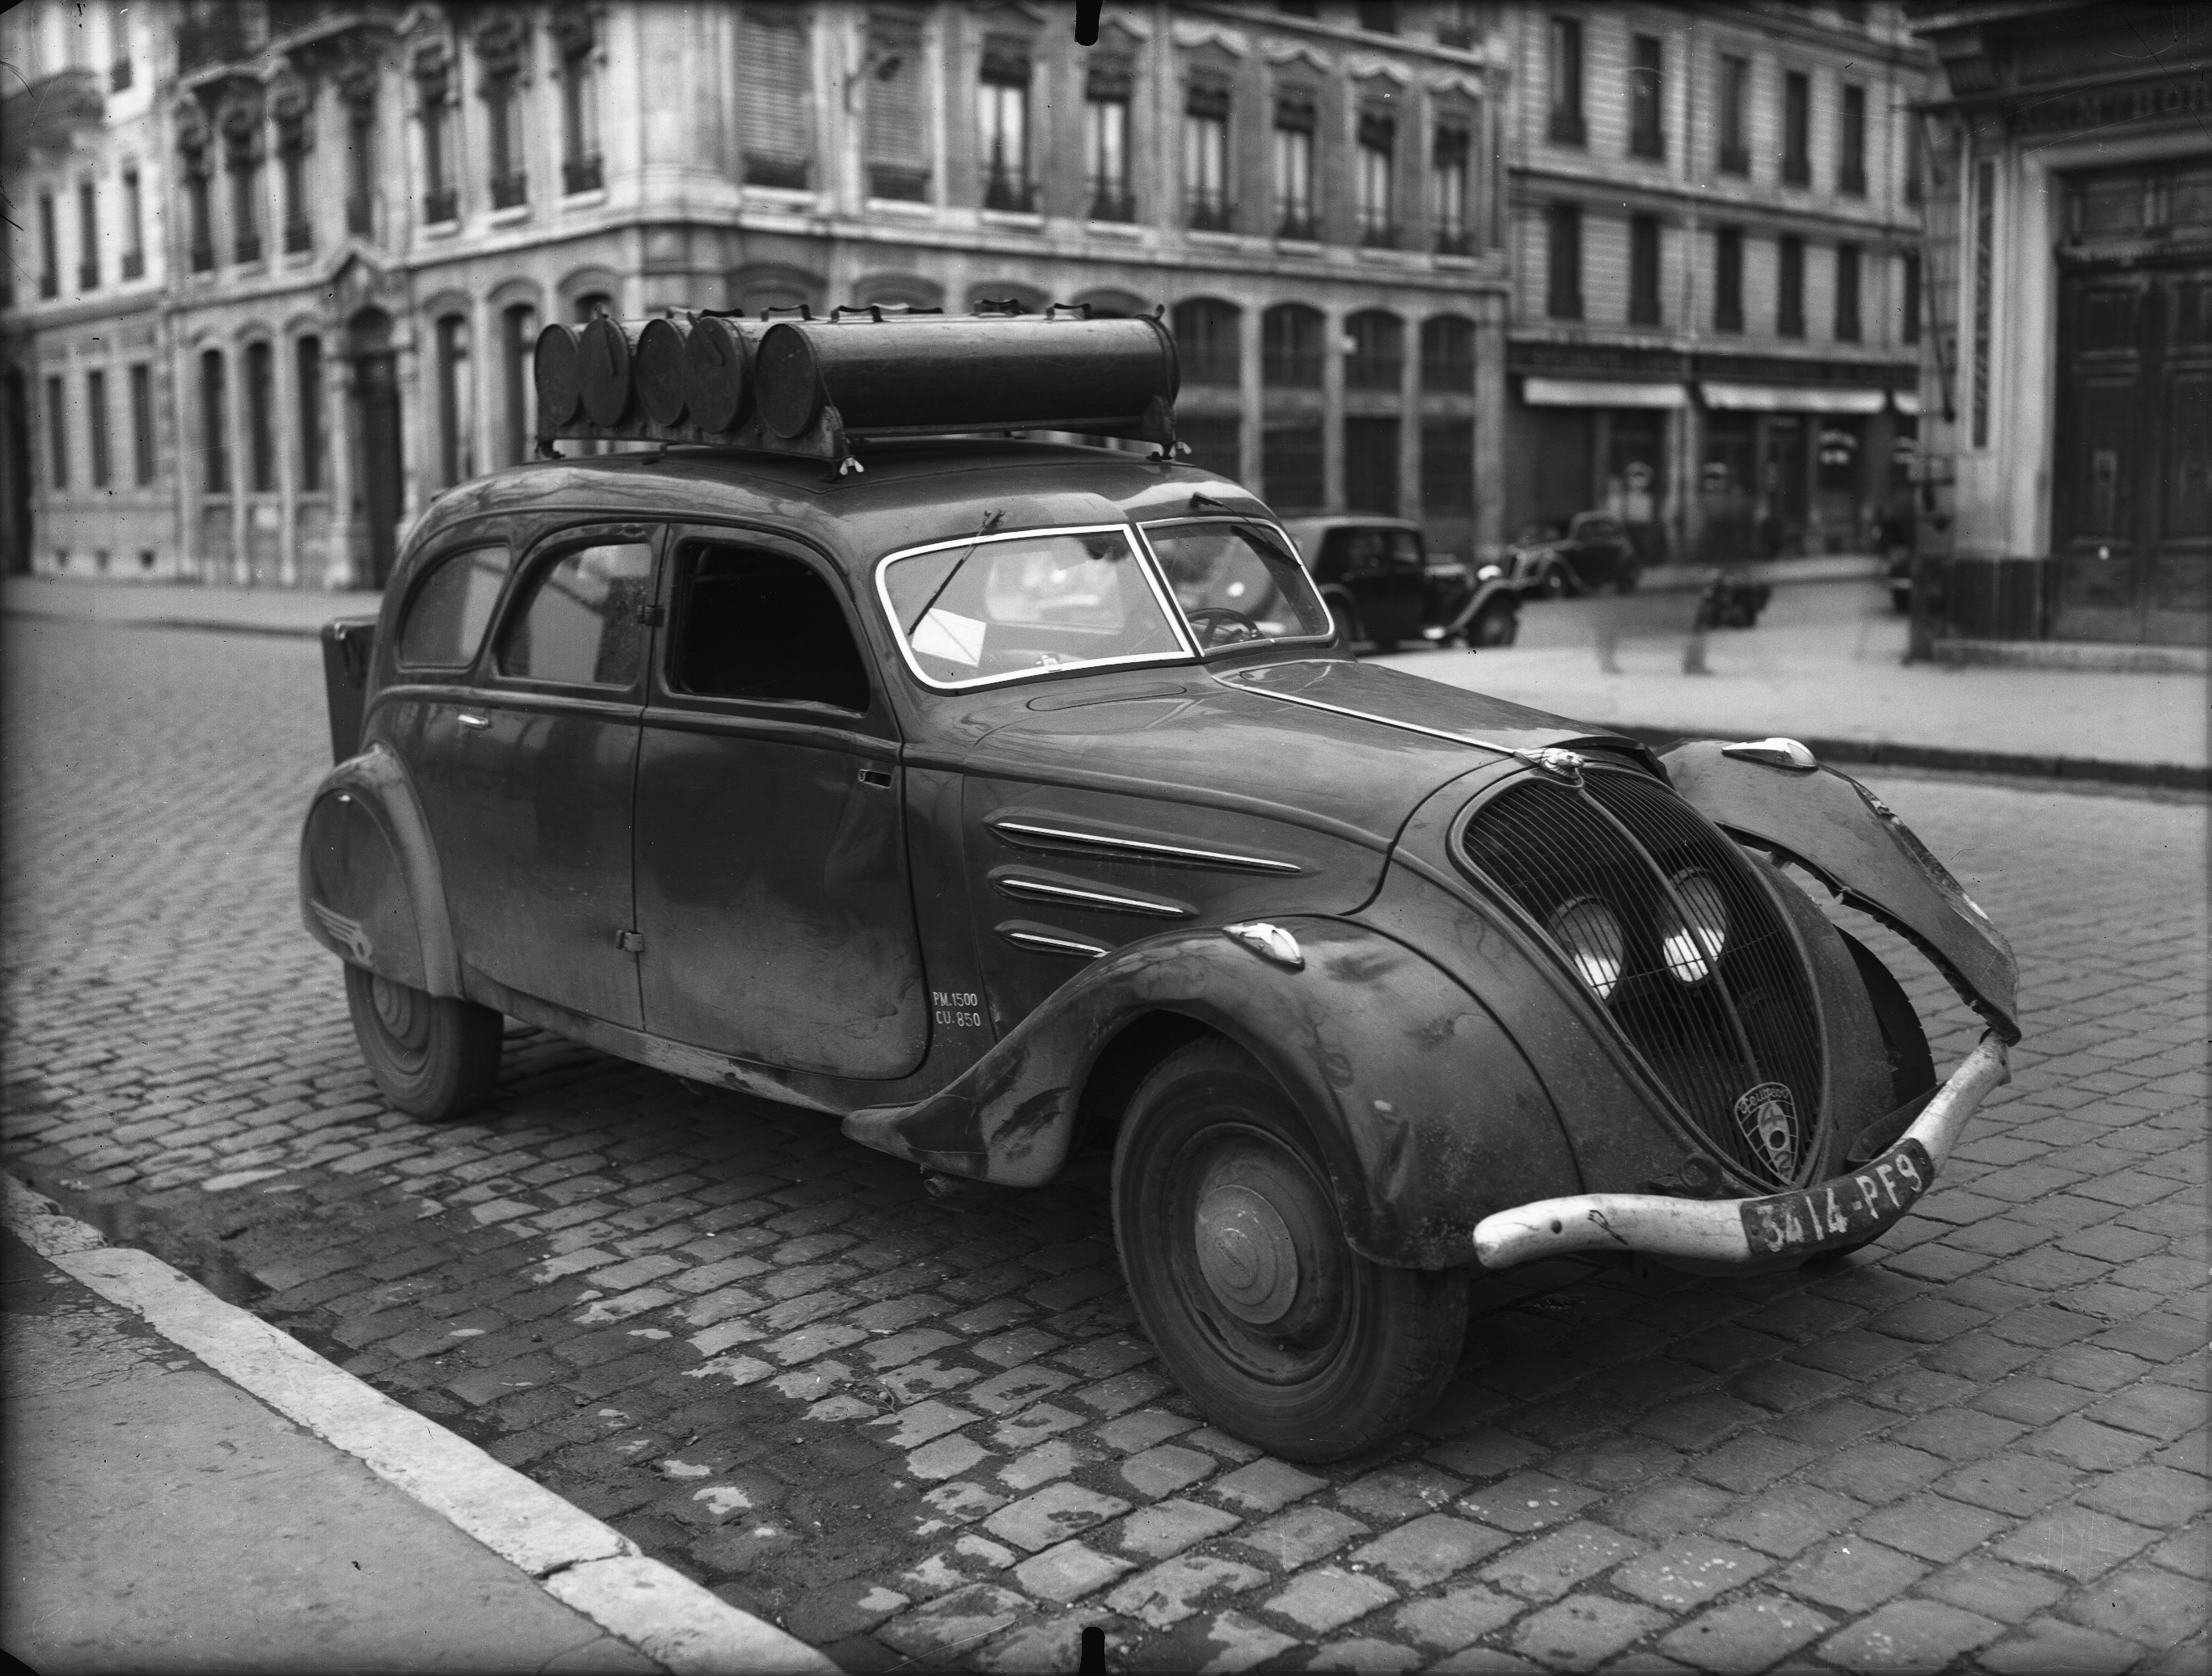 photographes en rh ne alpes voiture peugeot 402 gazog ne. Black Bedroom Furniture Sets. Home Design Ideas